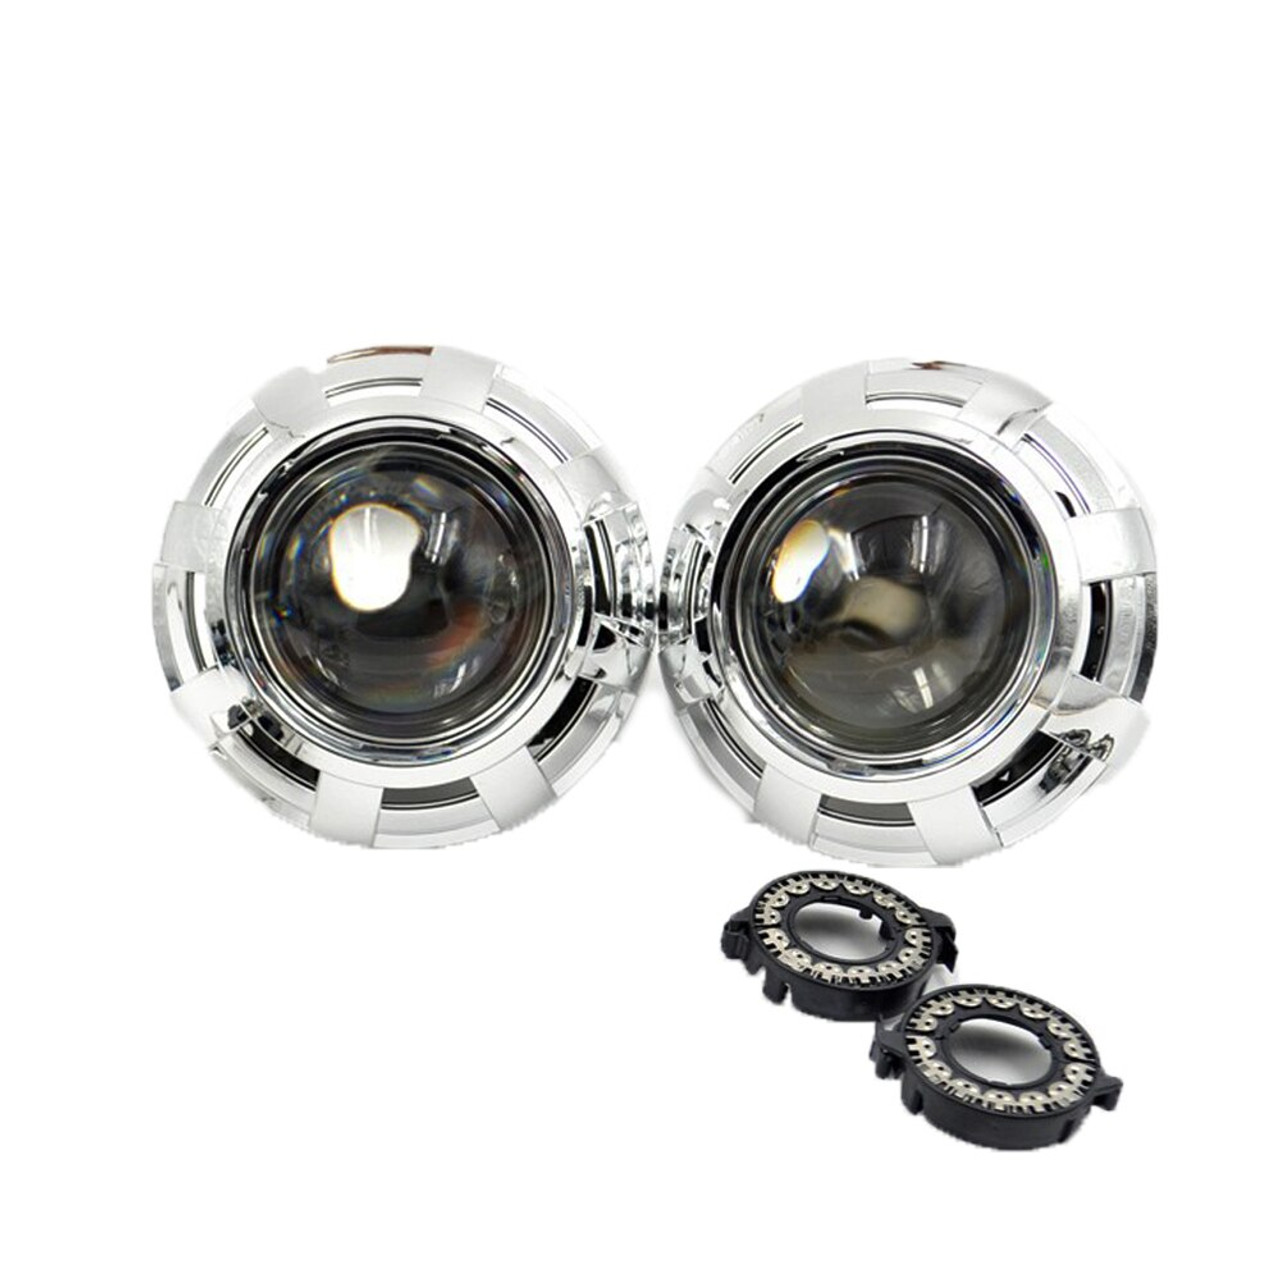 Car Styling Hella 5 3 0 Inches Hid Bi Xenon Projector Lens With